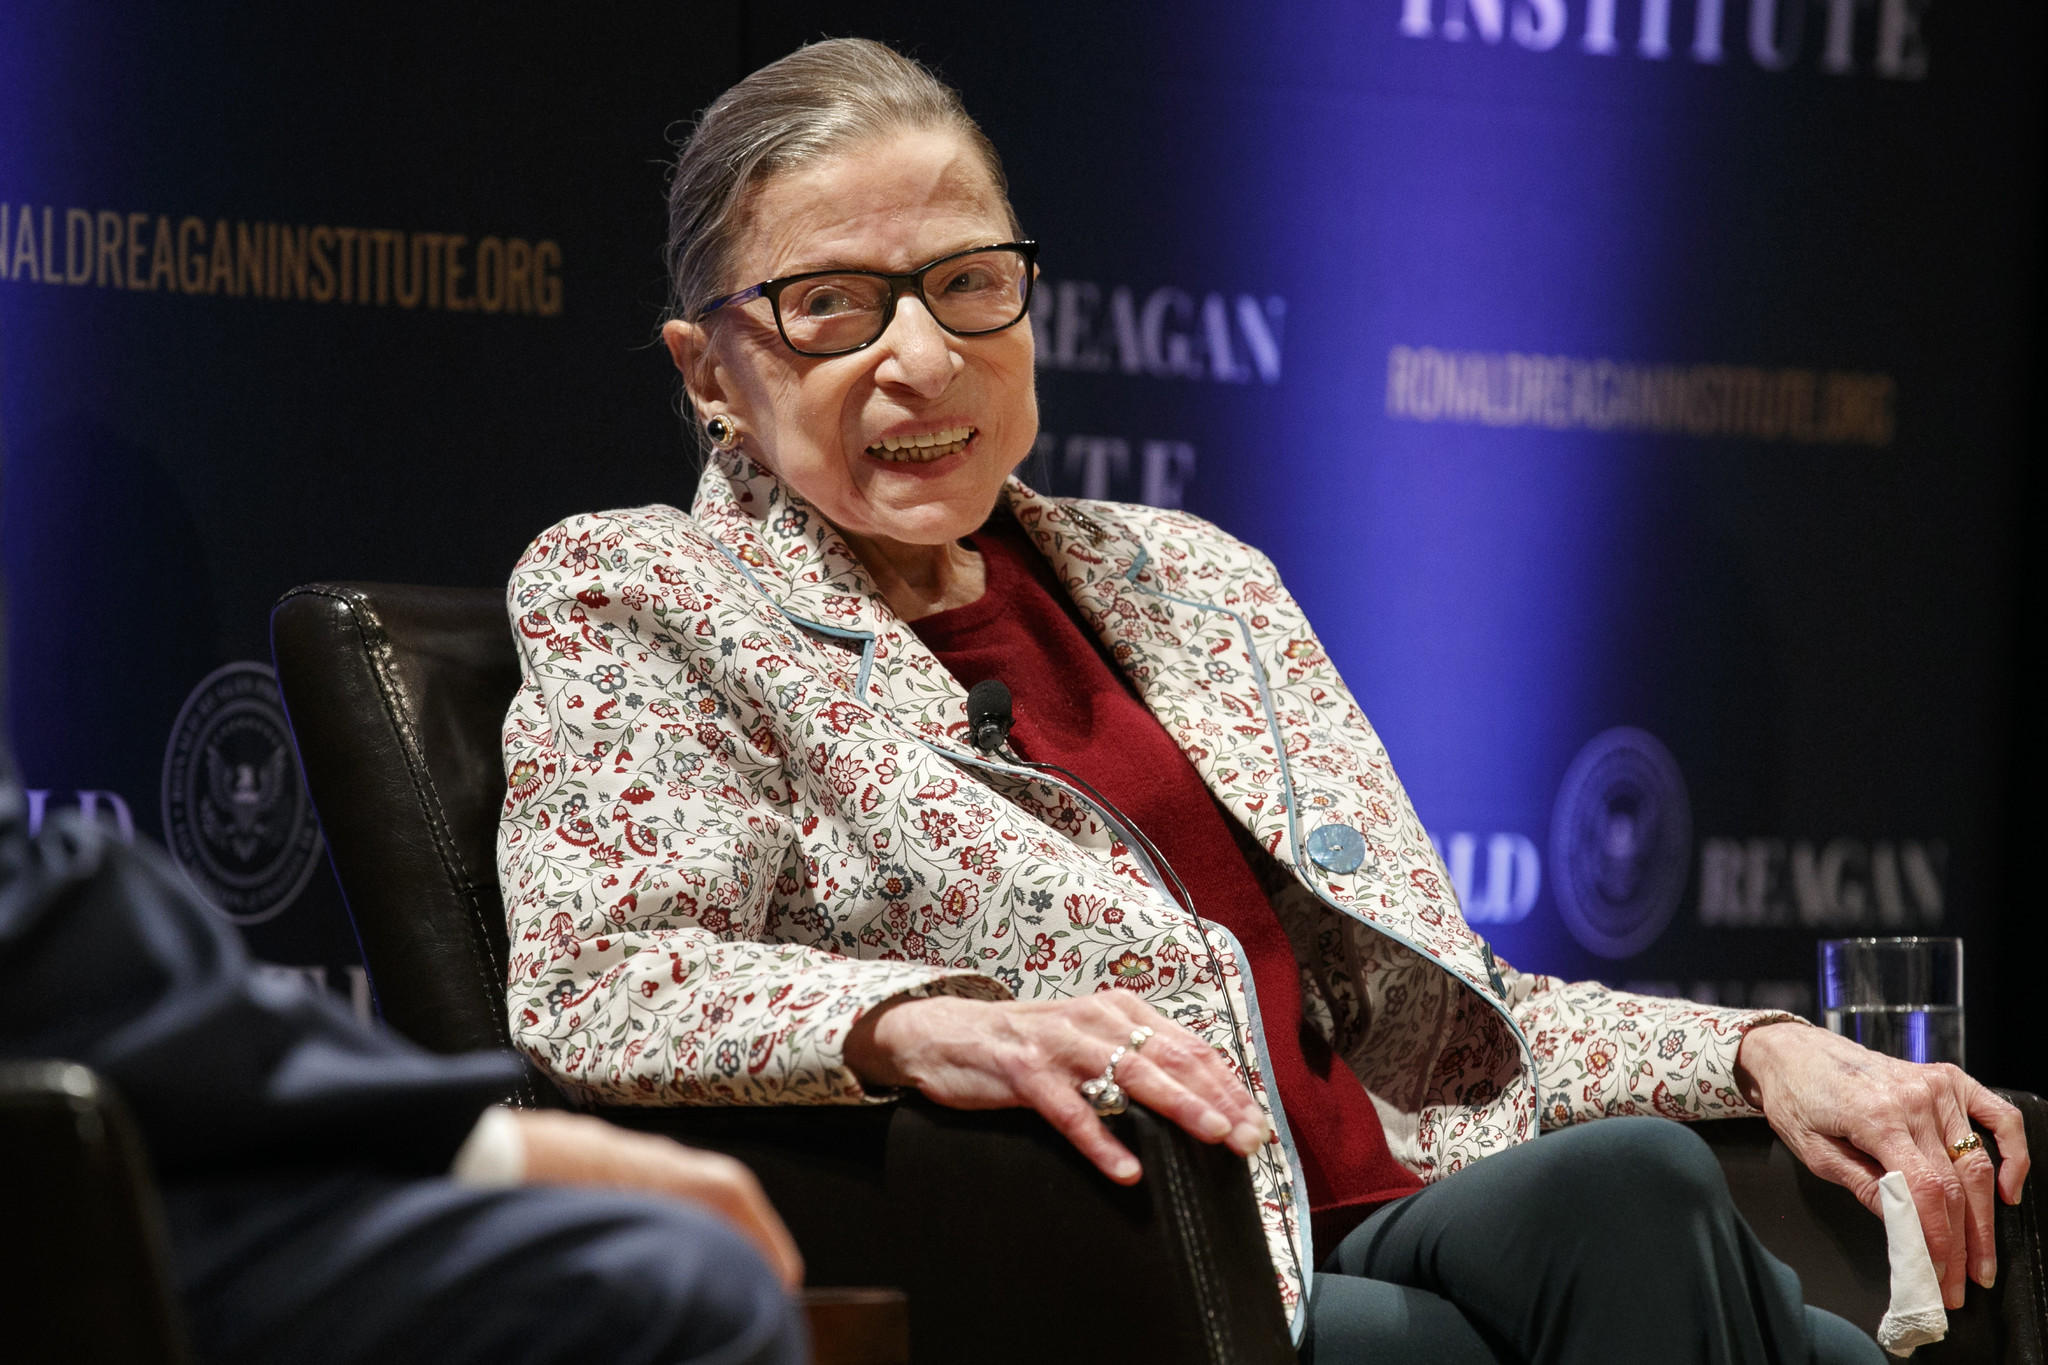 Ruth Bader Ginsburg's commitment to human rights will win $1 million for the charity of her choice